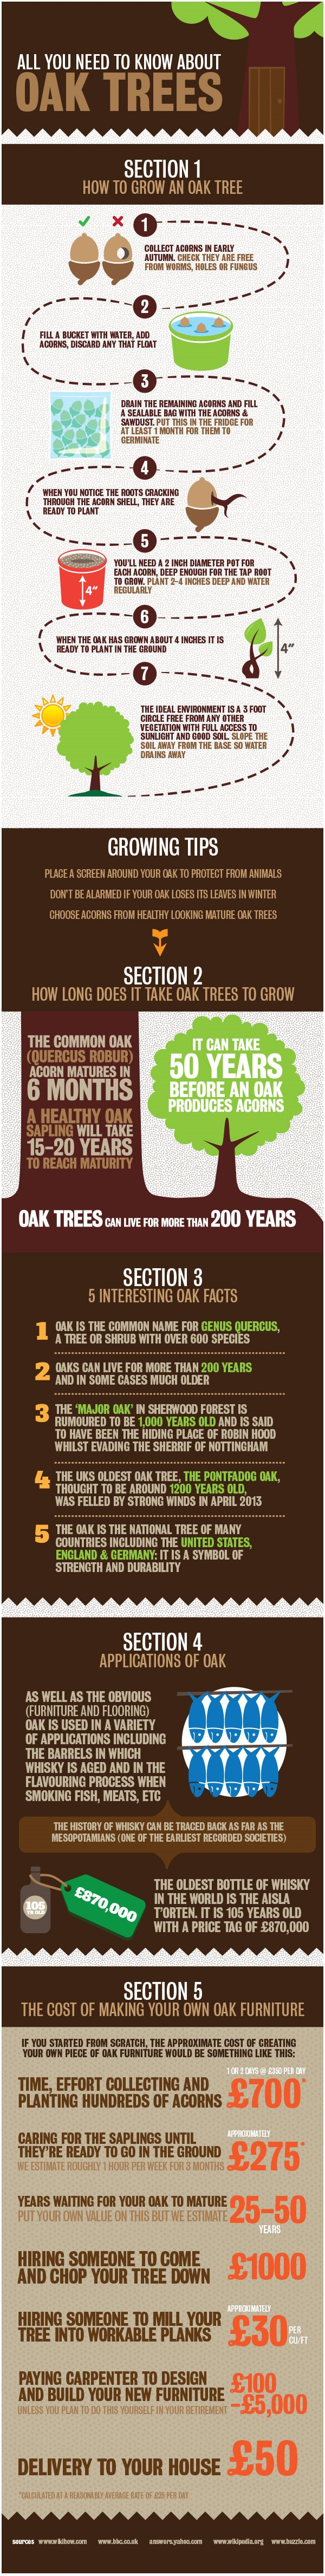 All you need to know about Oak trees